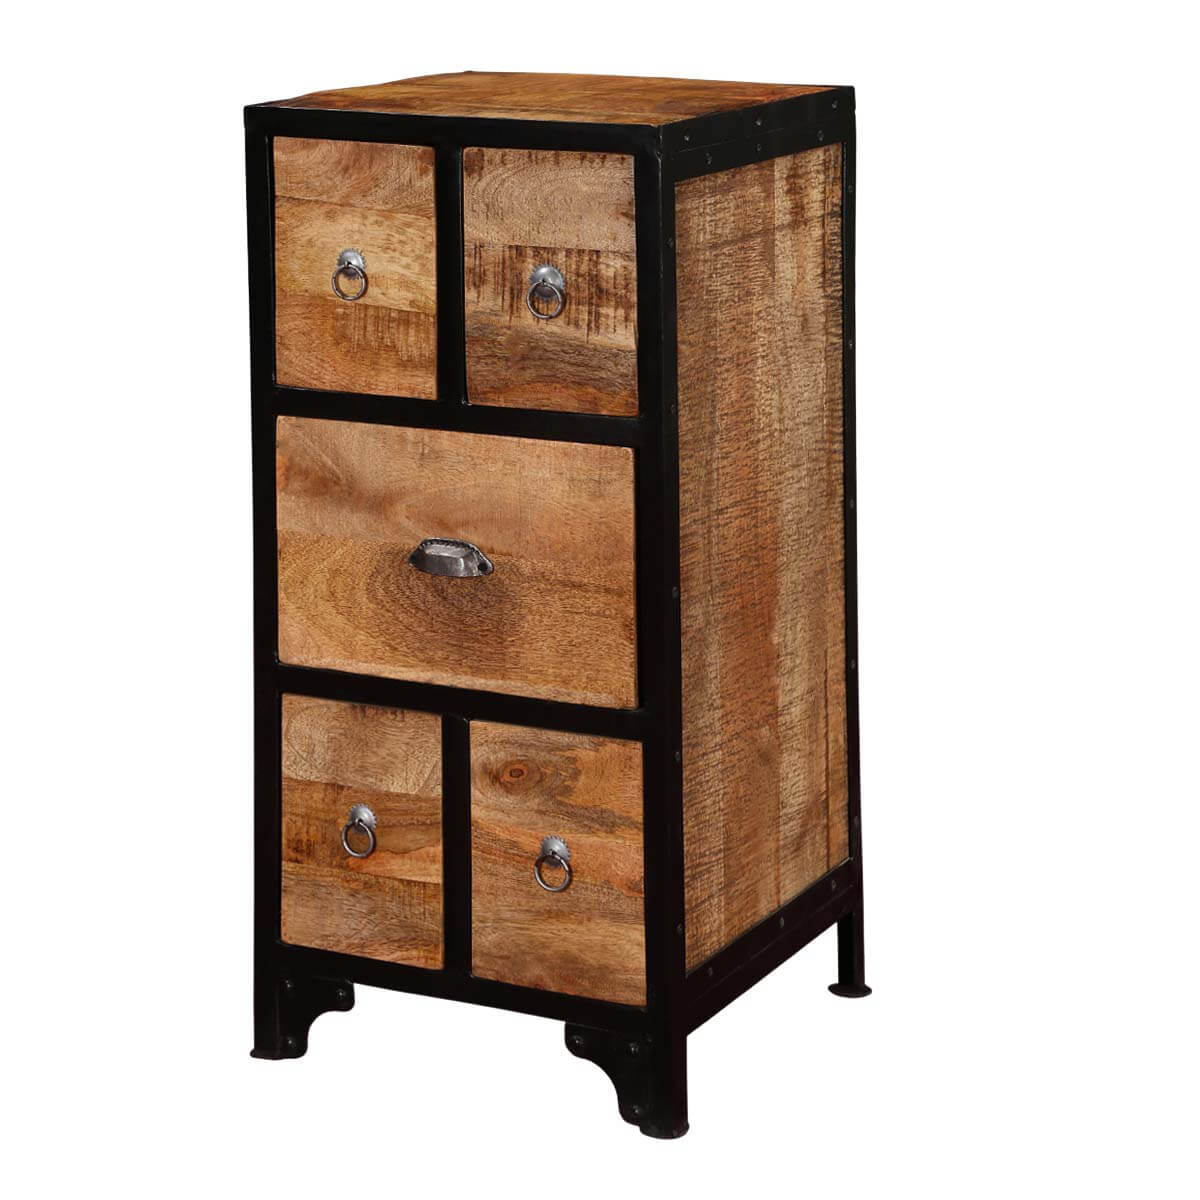 Rialto Industrial Rustic Mango Wood 5 Drawer Accent Chest